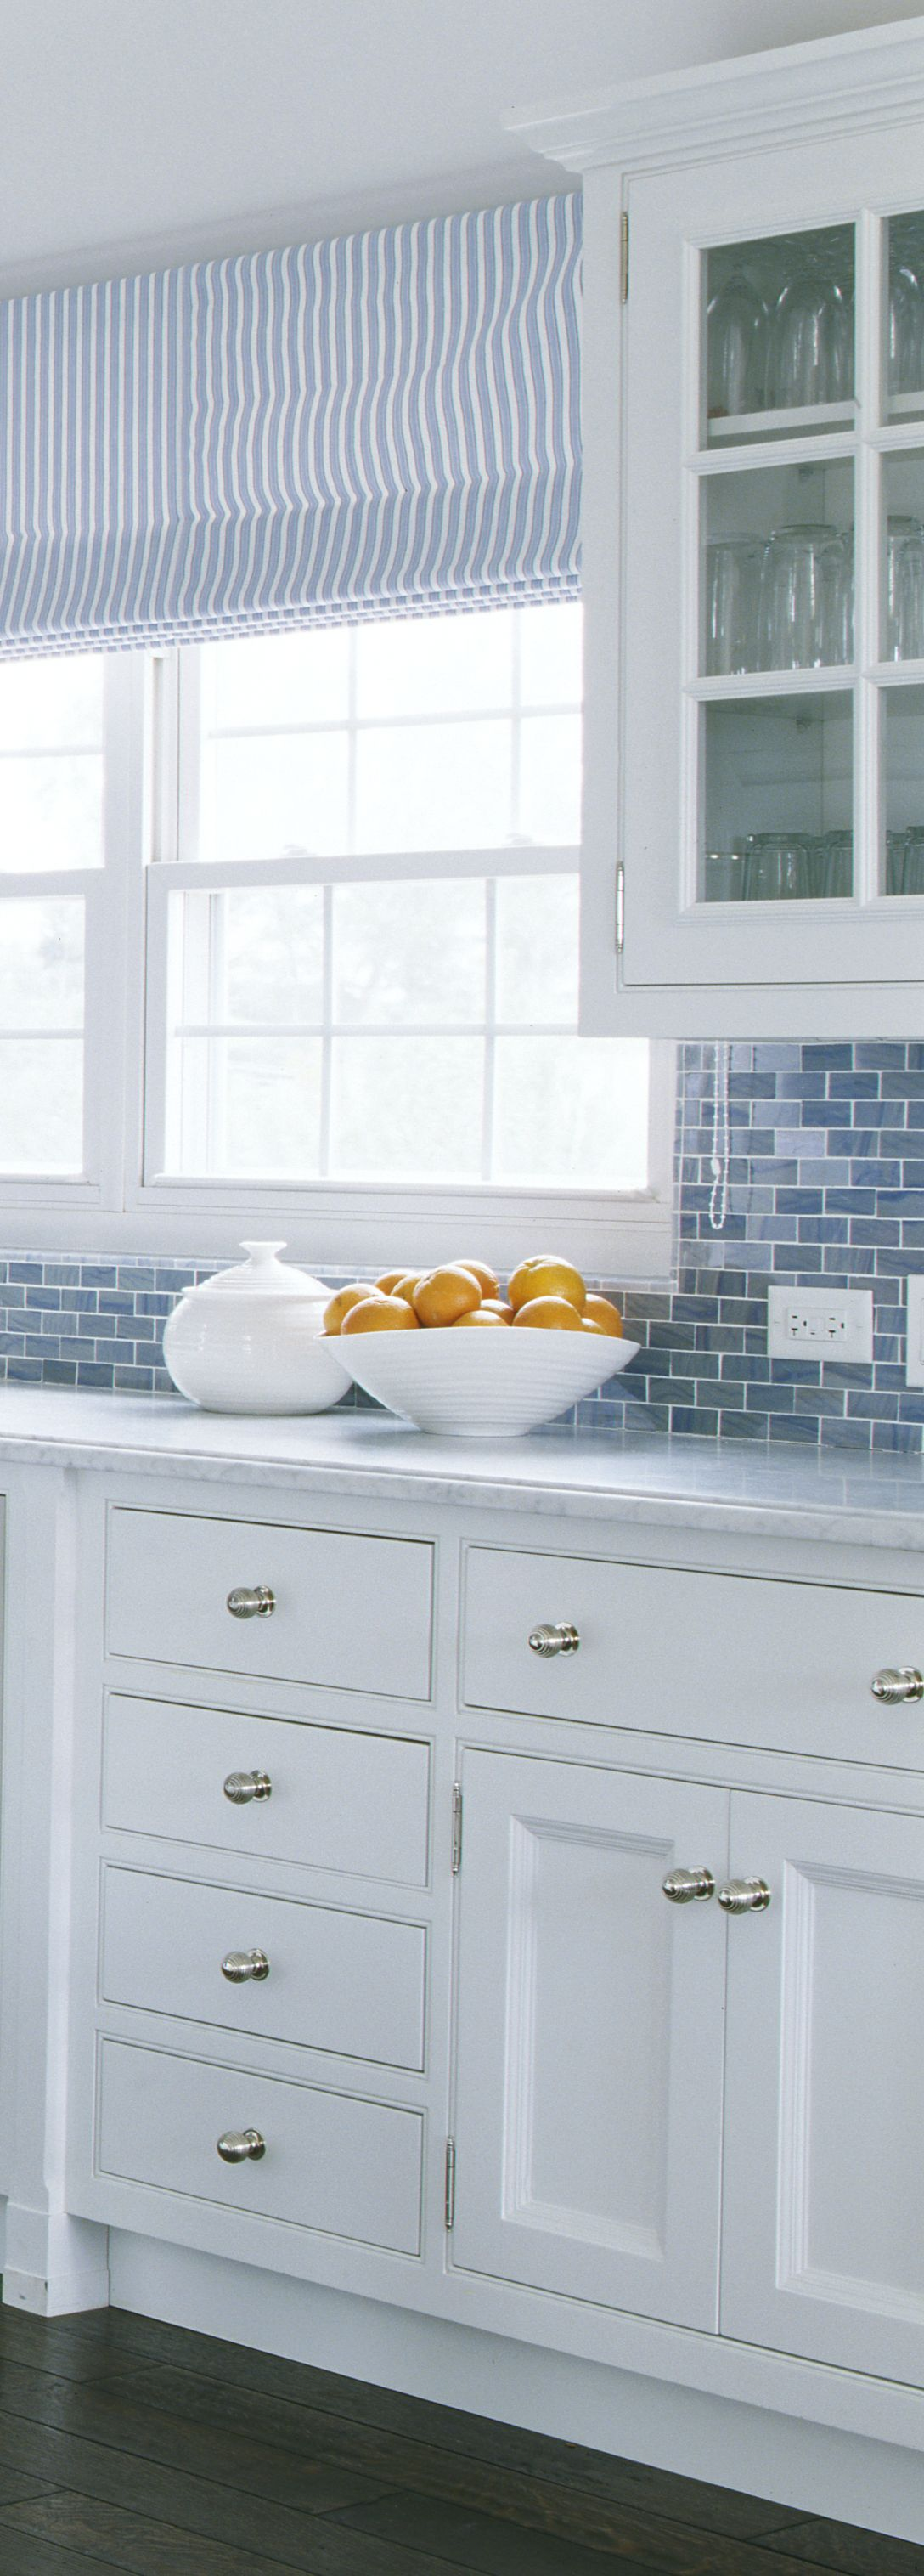 Subway Tiles | Pinterest | Coastal, Kitchens and Blue subway tile